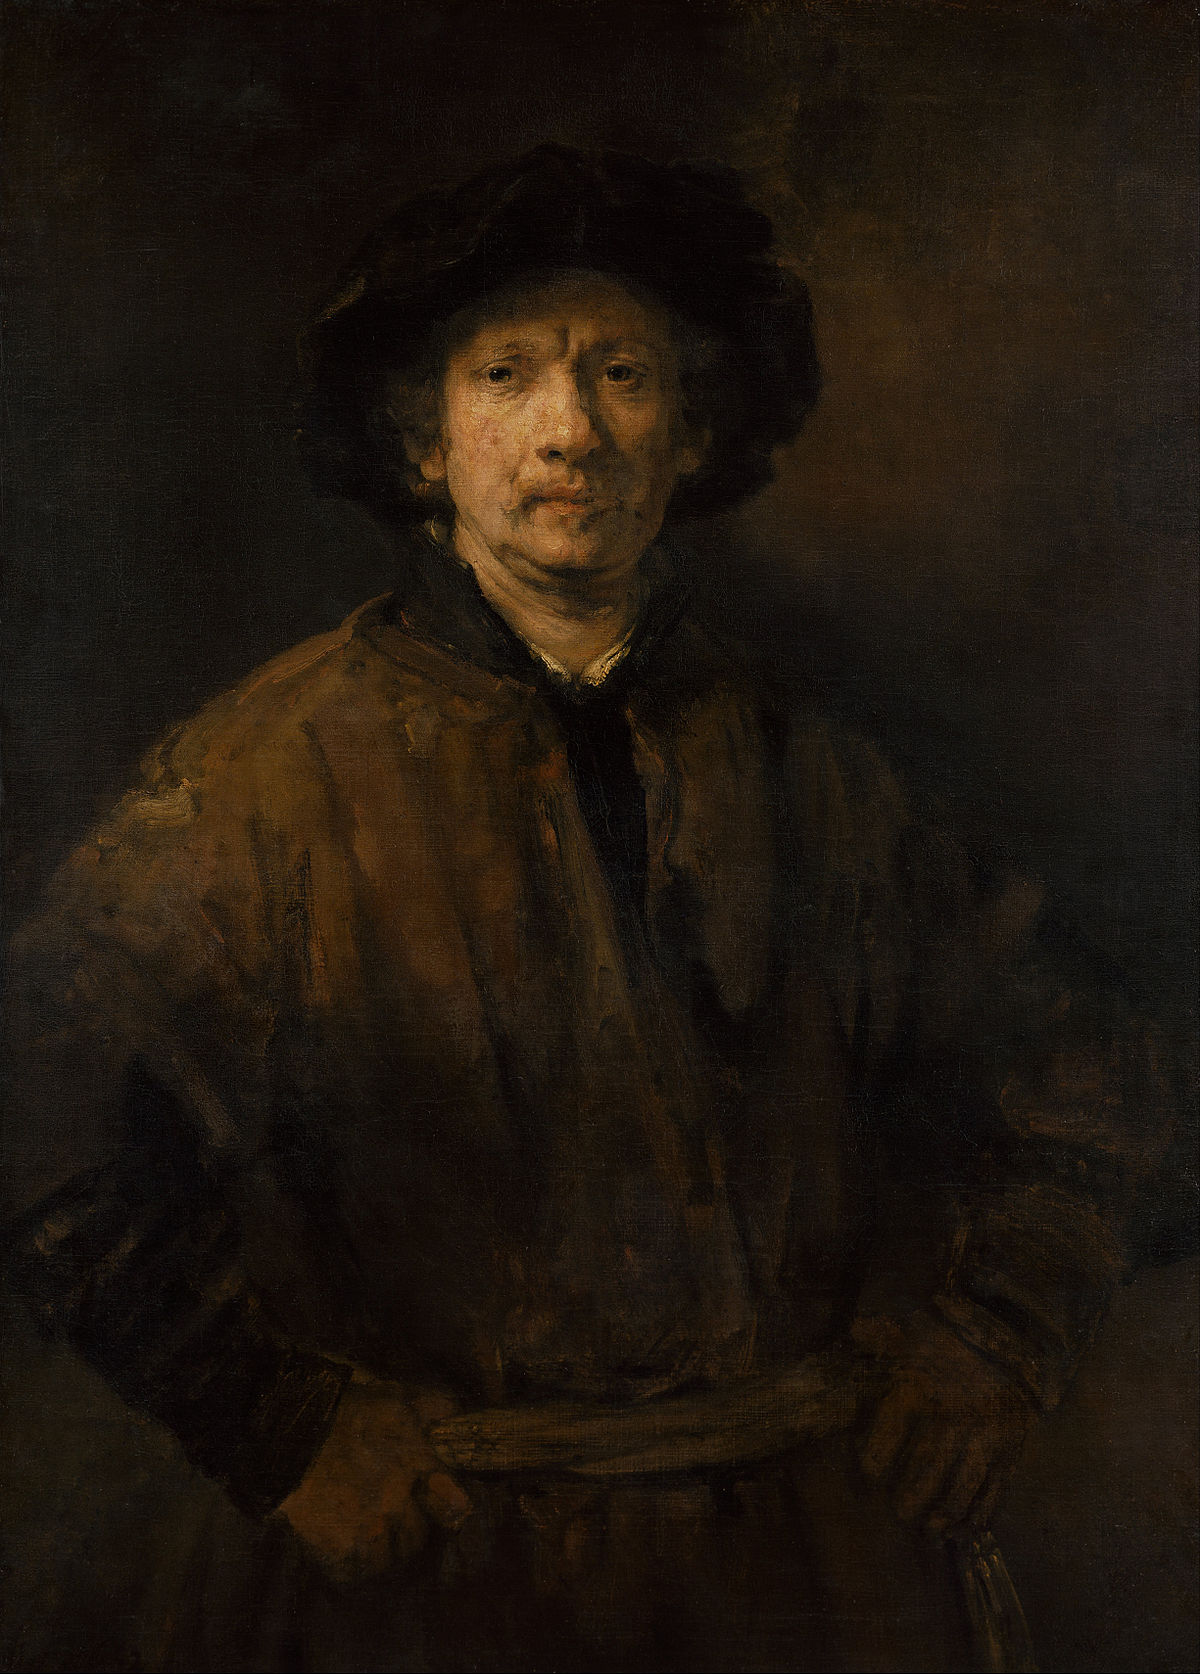 a biography of rembrandt van rijn Rembrandt van rijn (1606-1669) was one of the most important and influential   rembrandt made many of his best works in the last years of his life, when his.